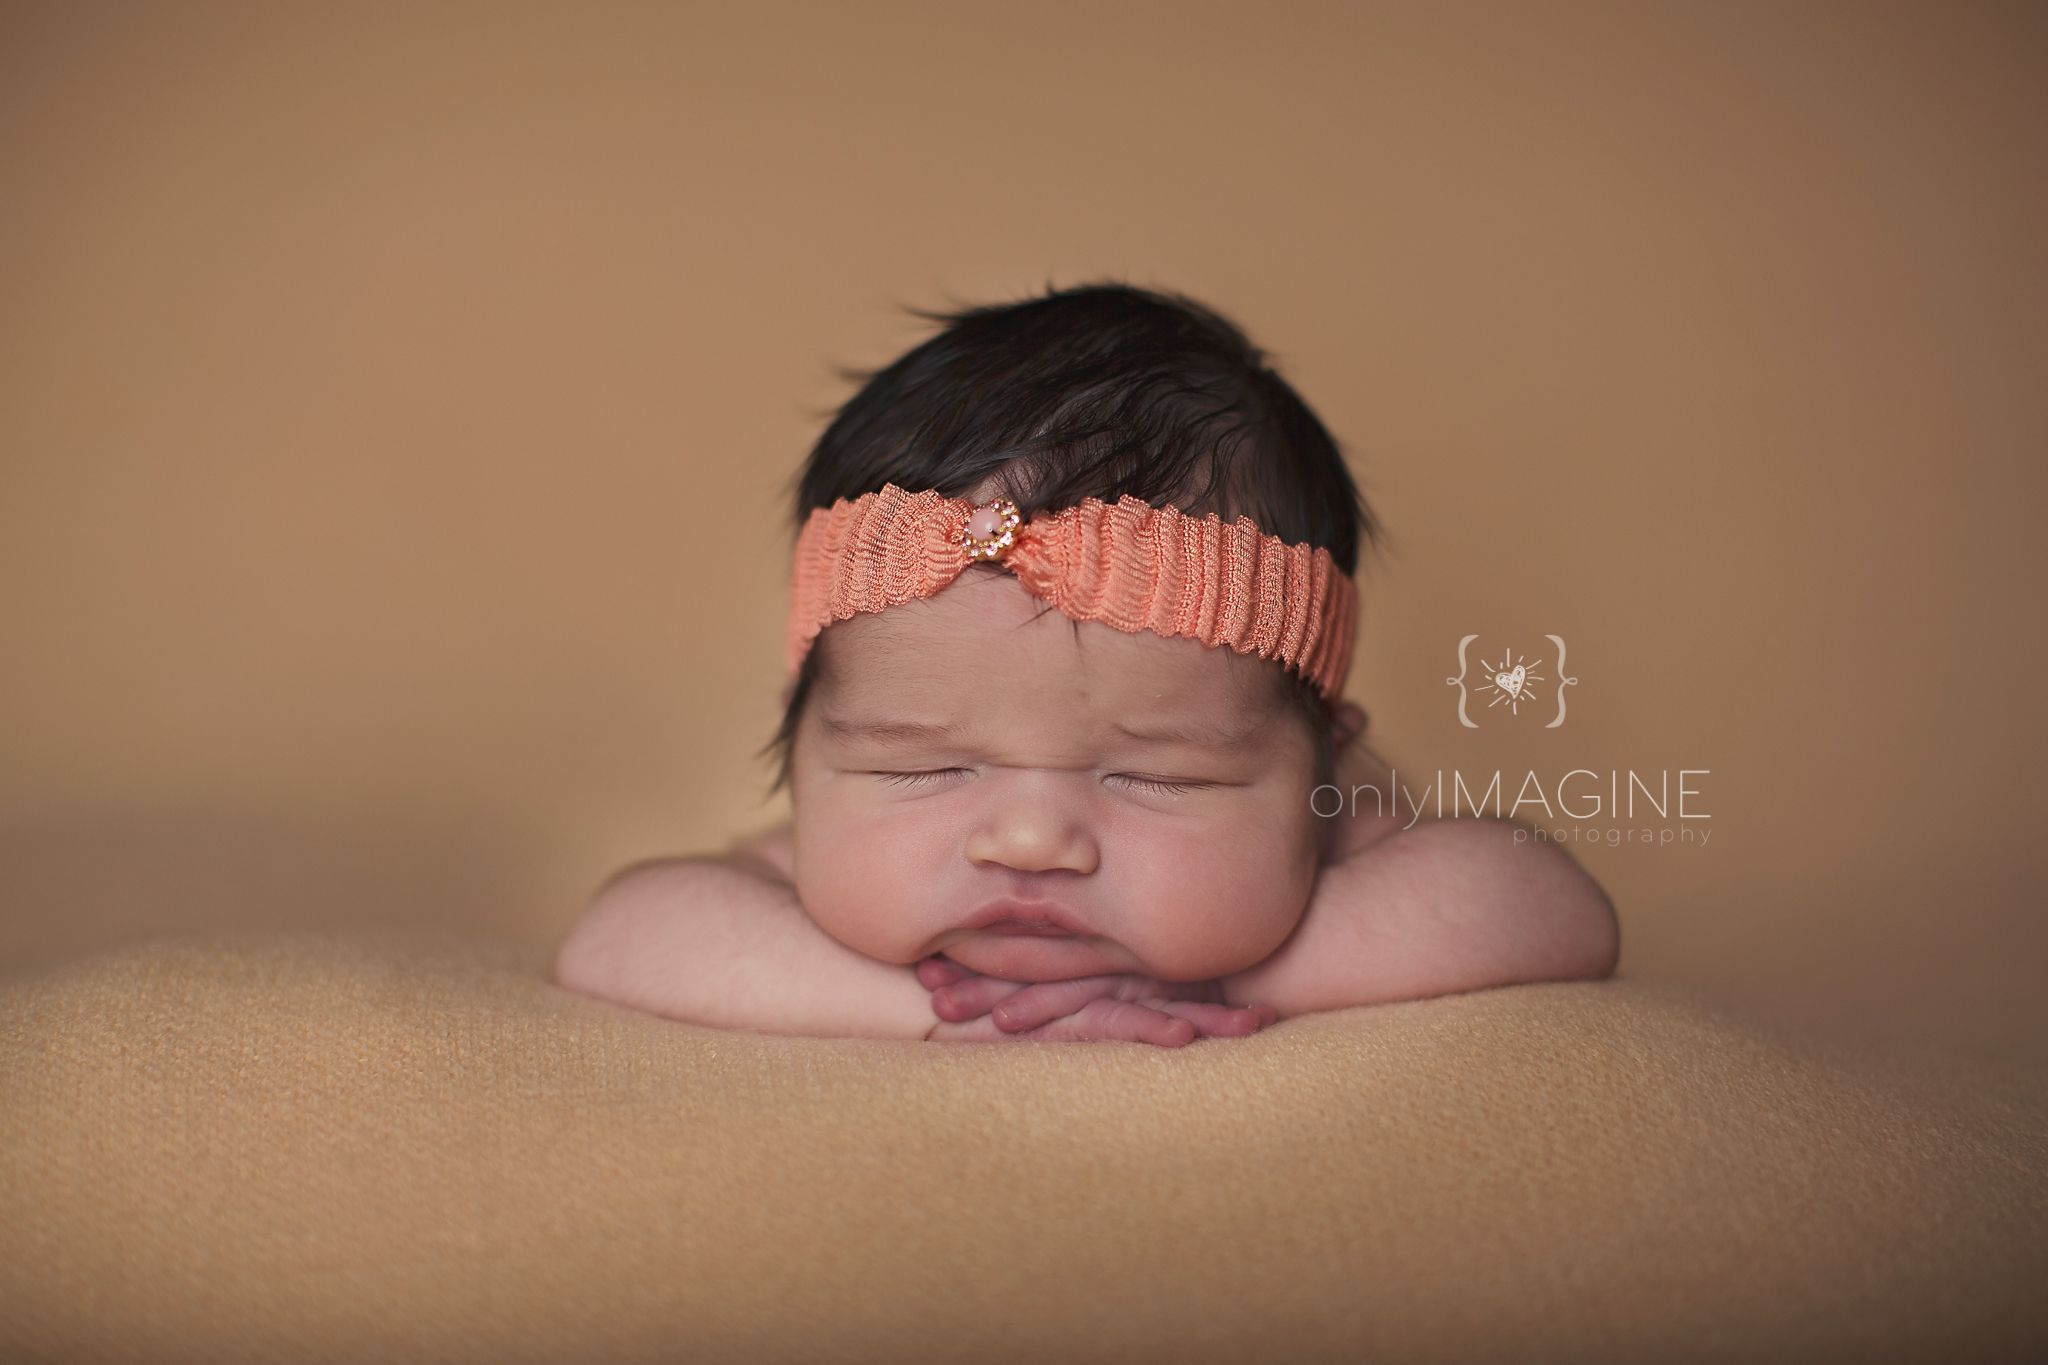 Bryn lubbock texas newborn photographer only imagine photography